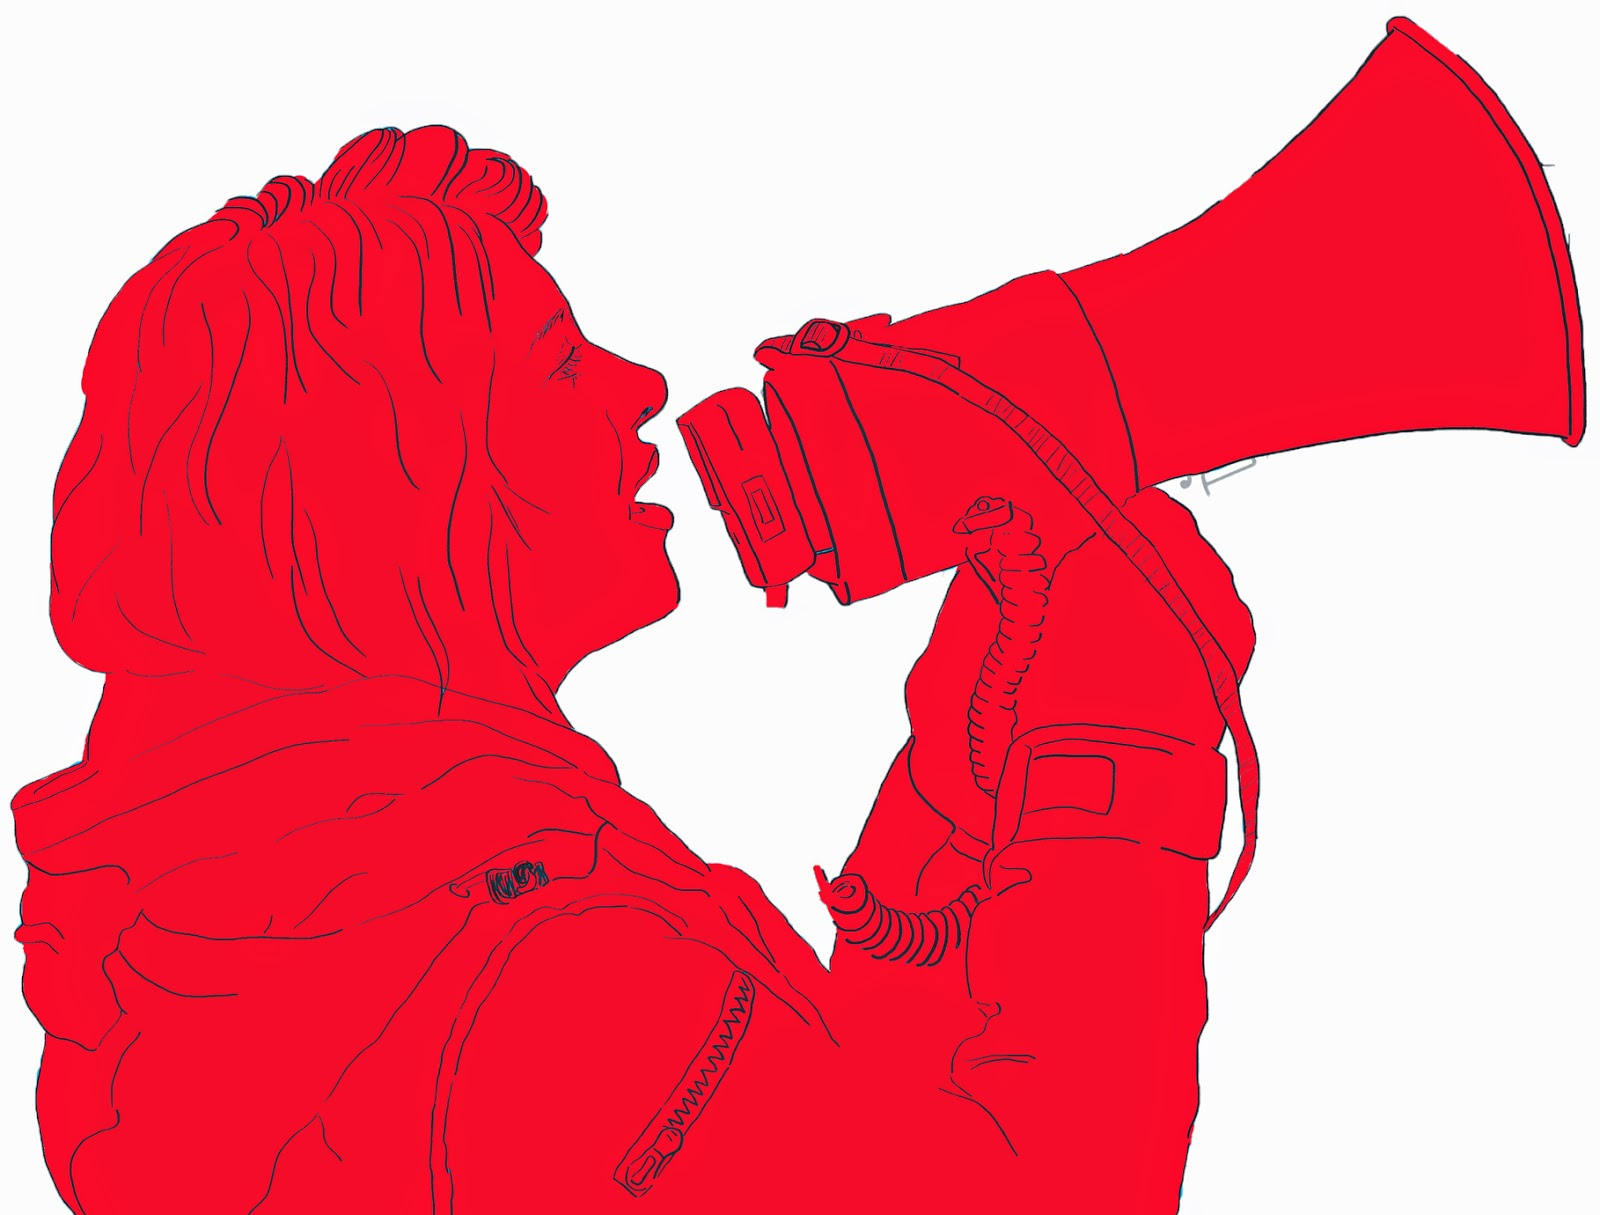 Megaphone Woman Red